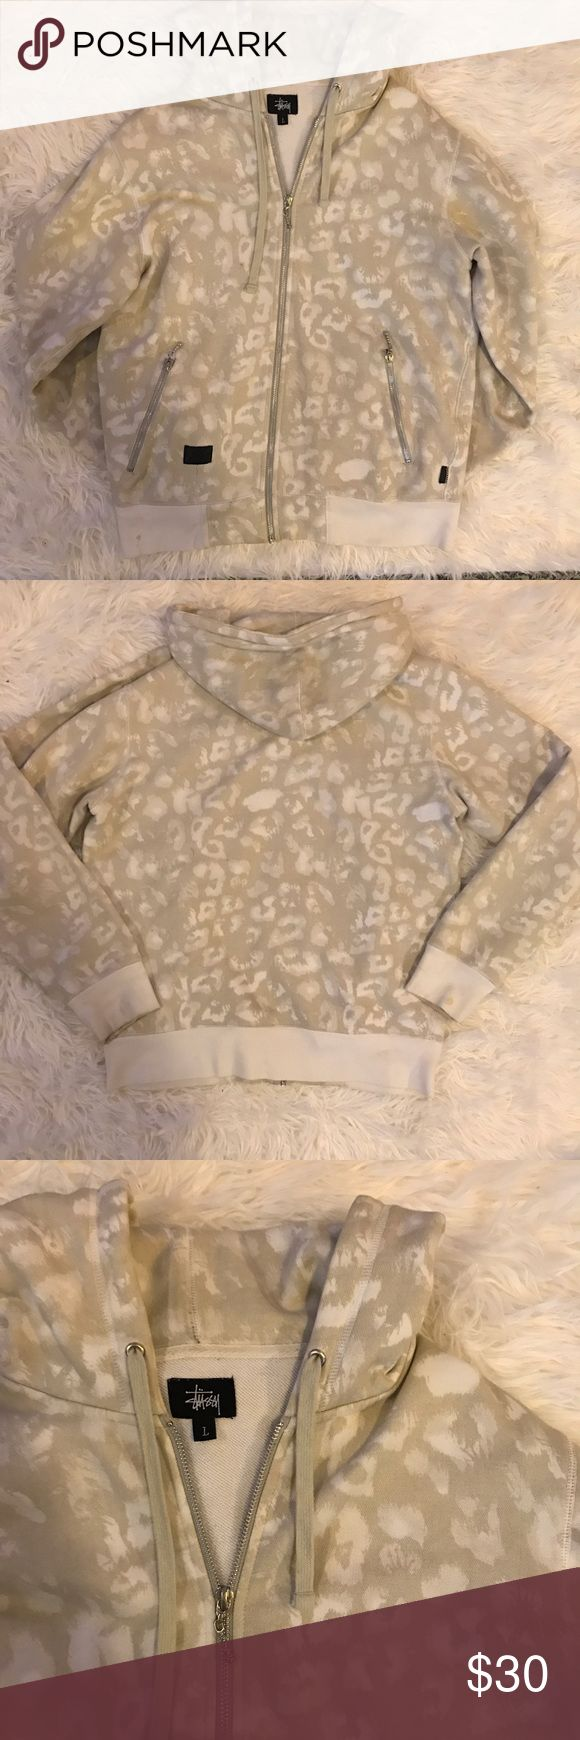 Stussy cheetah print zip up. Size large Stussy cream colored  cheetah print zip up. In used condition, wth a few little stain like down in pictures. Women's size large Stussy Tops Sweatshirts & Hoodies